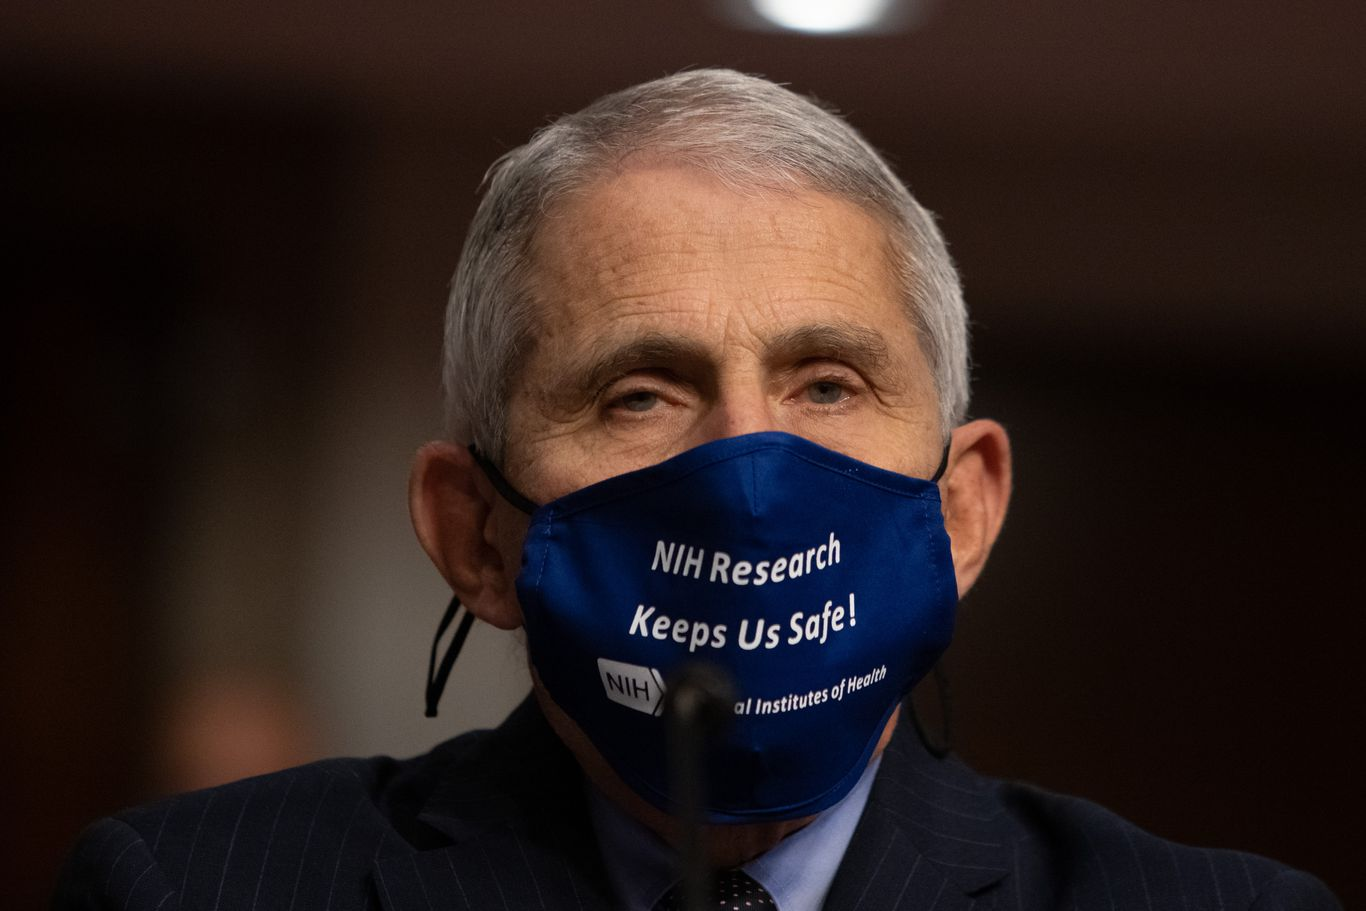 Fauci says if people won't wear masks, maybe it should be mandated